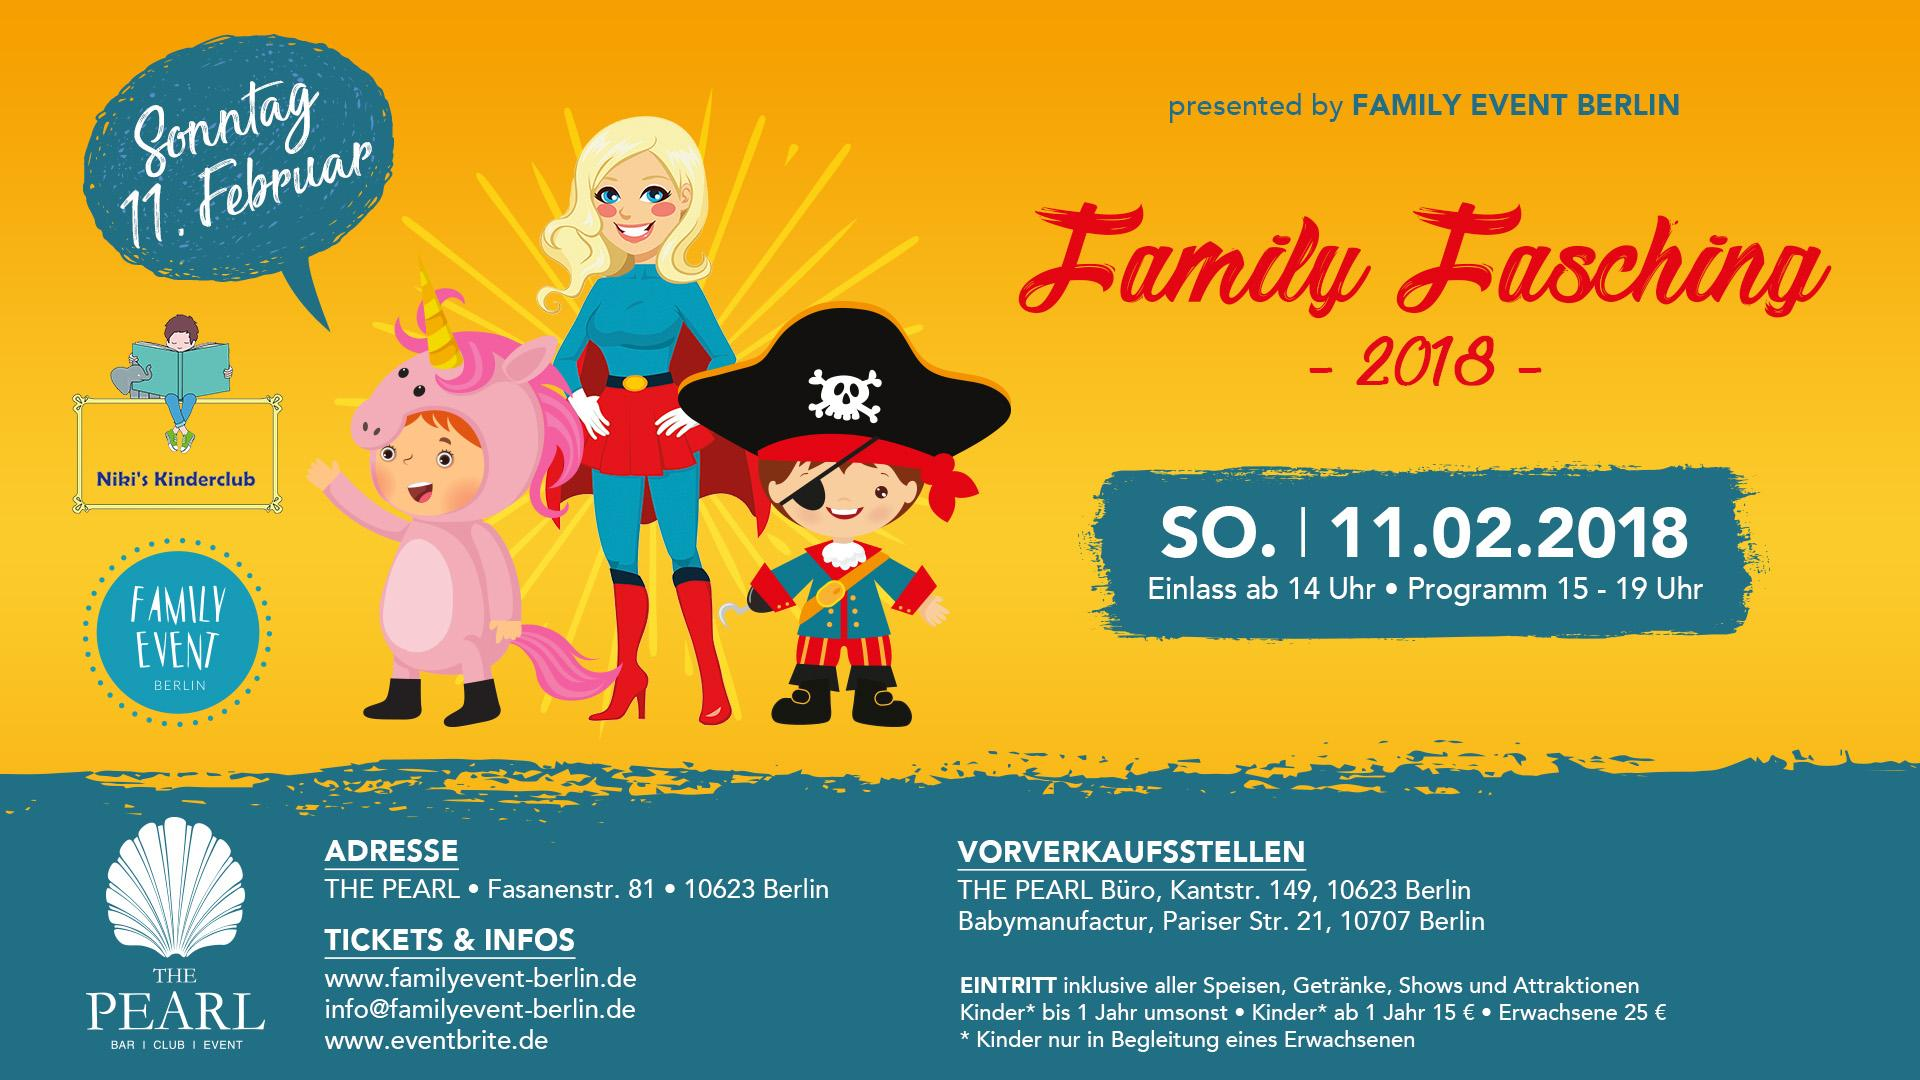 Family Fasching 2018 @ THE PEARL ... - Berlin - 11/02/18 - Evensi